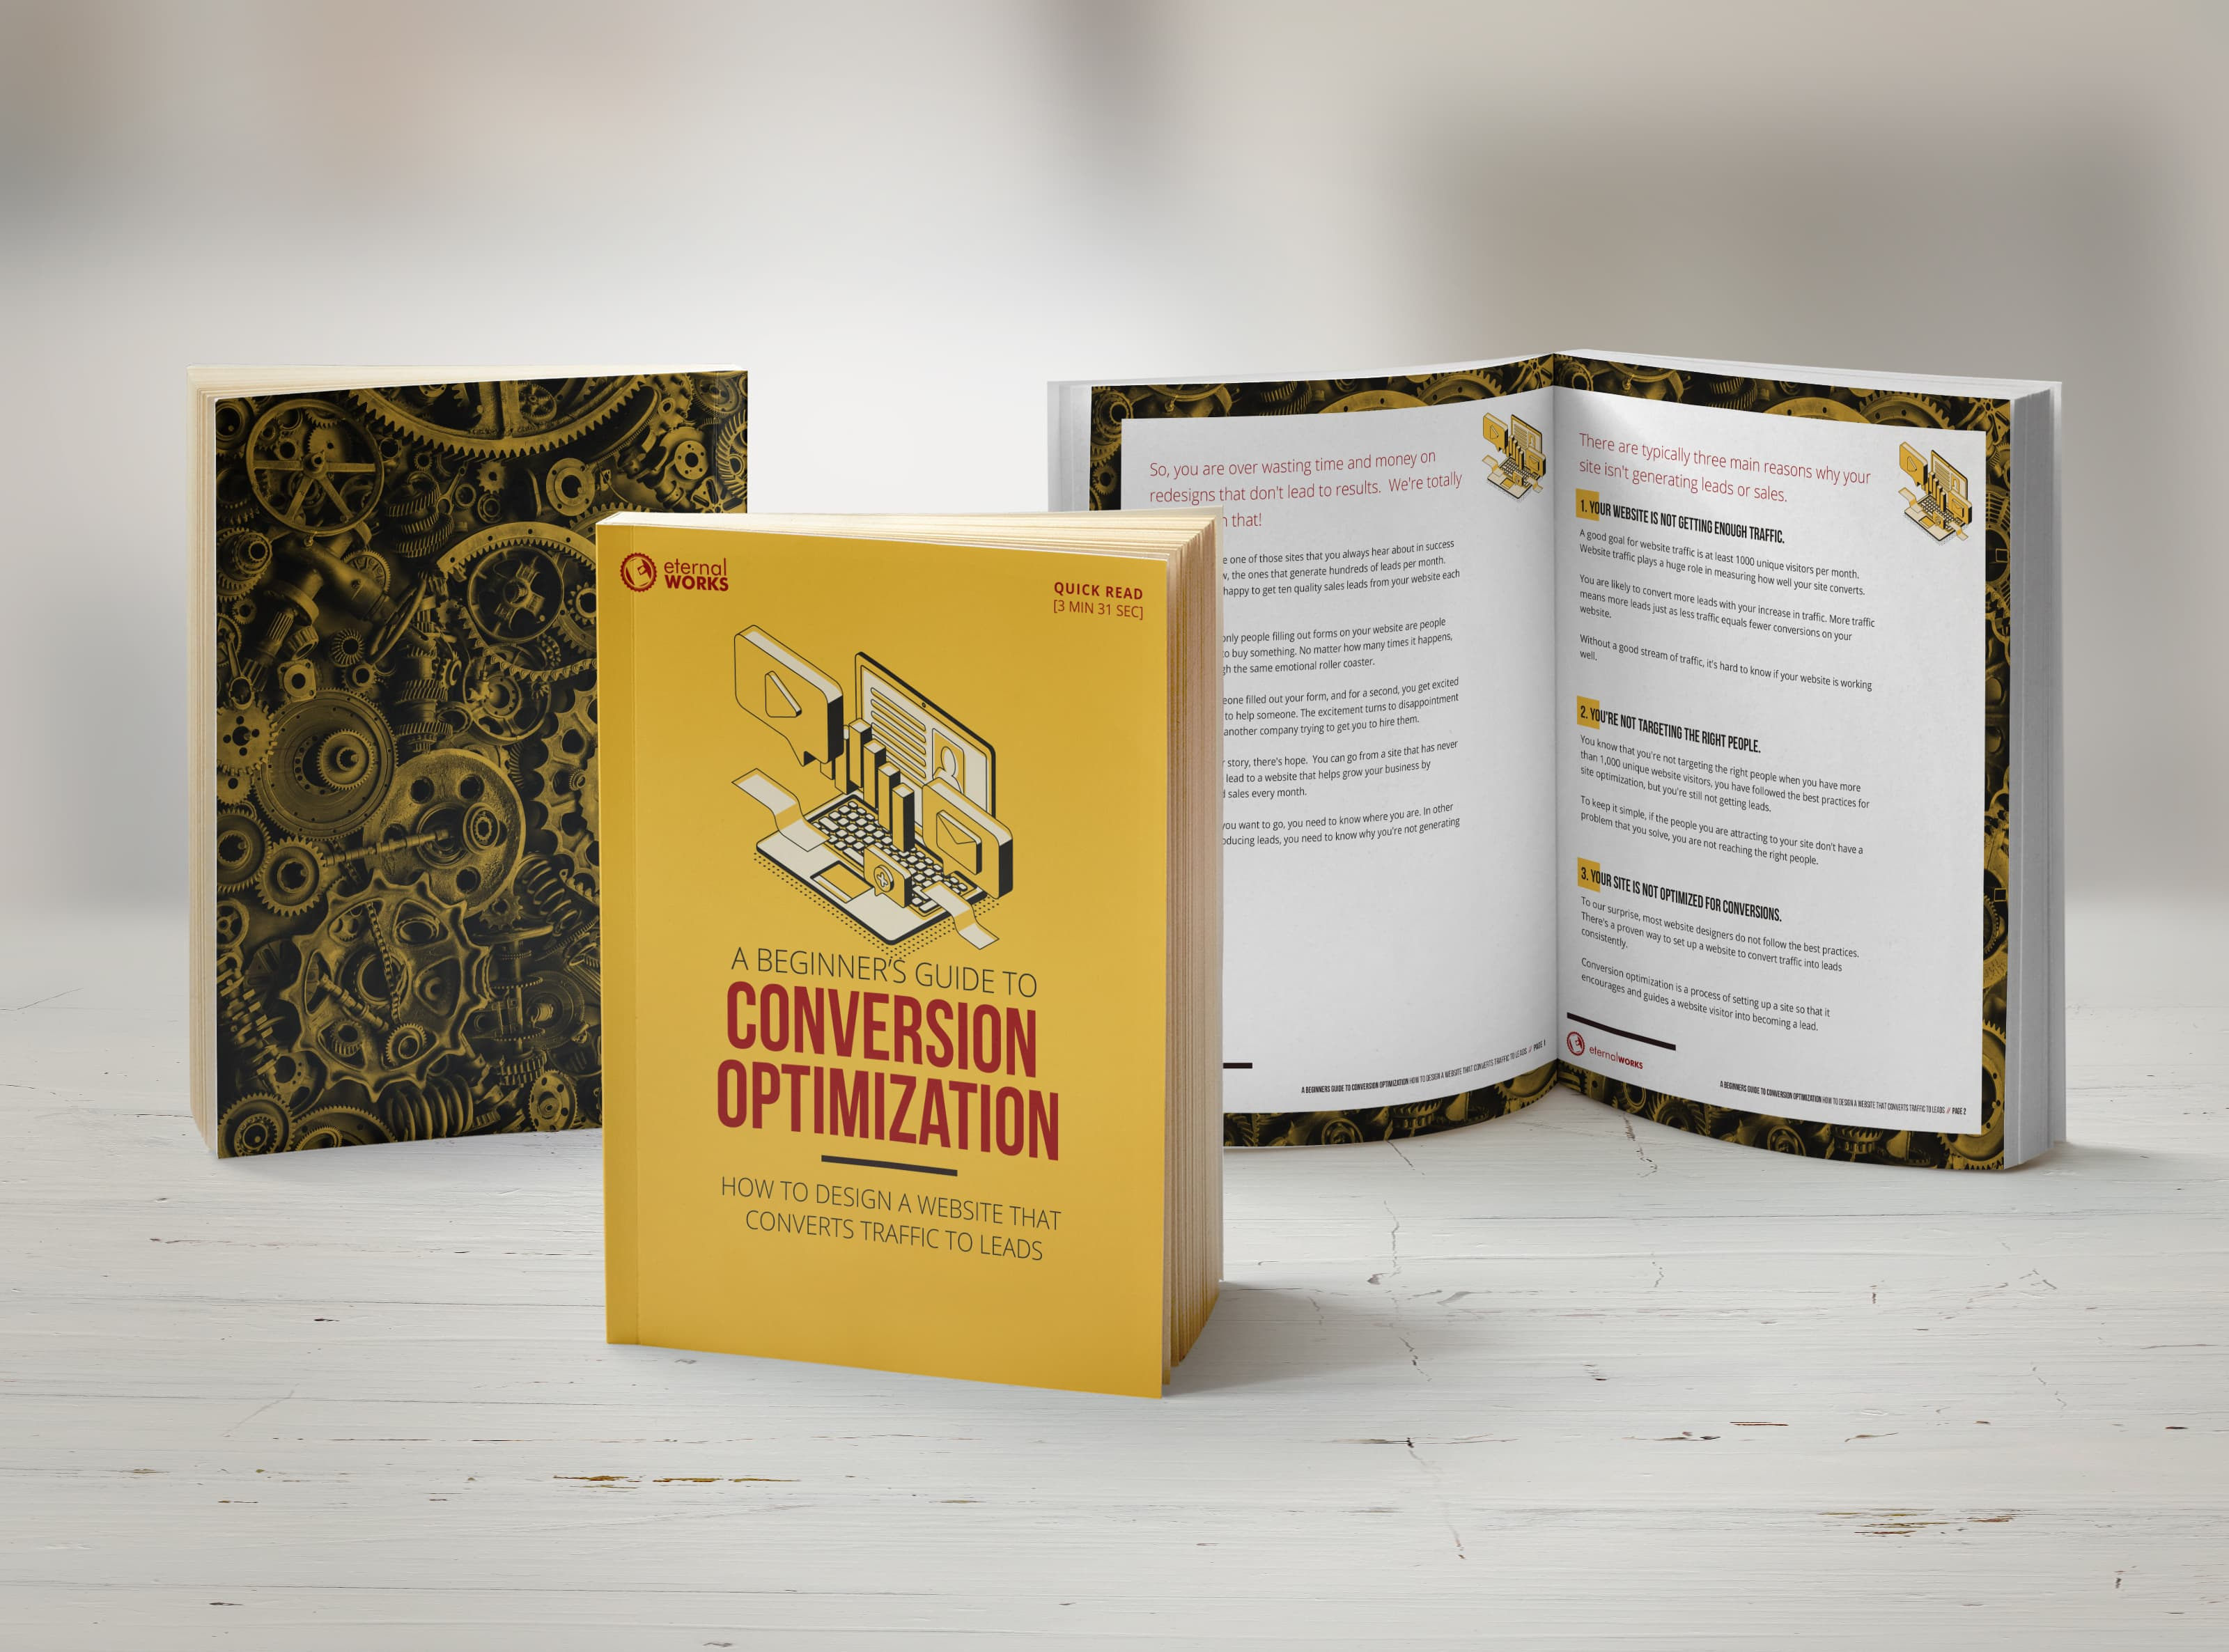 IMG_Eternal_Works_Web_Design_eBook_A_Beginners_Guide_To_Conversion_Optimization_006